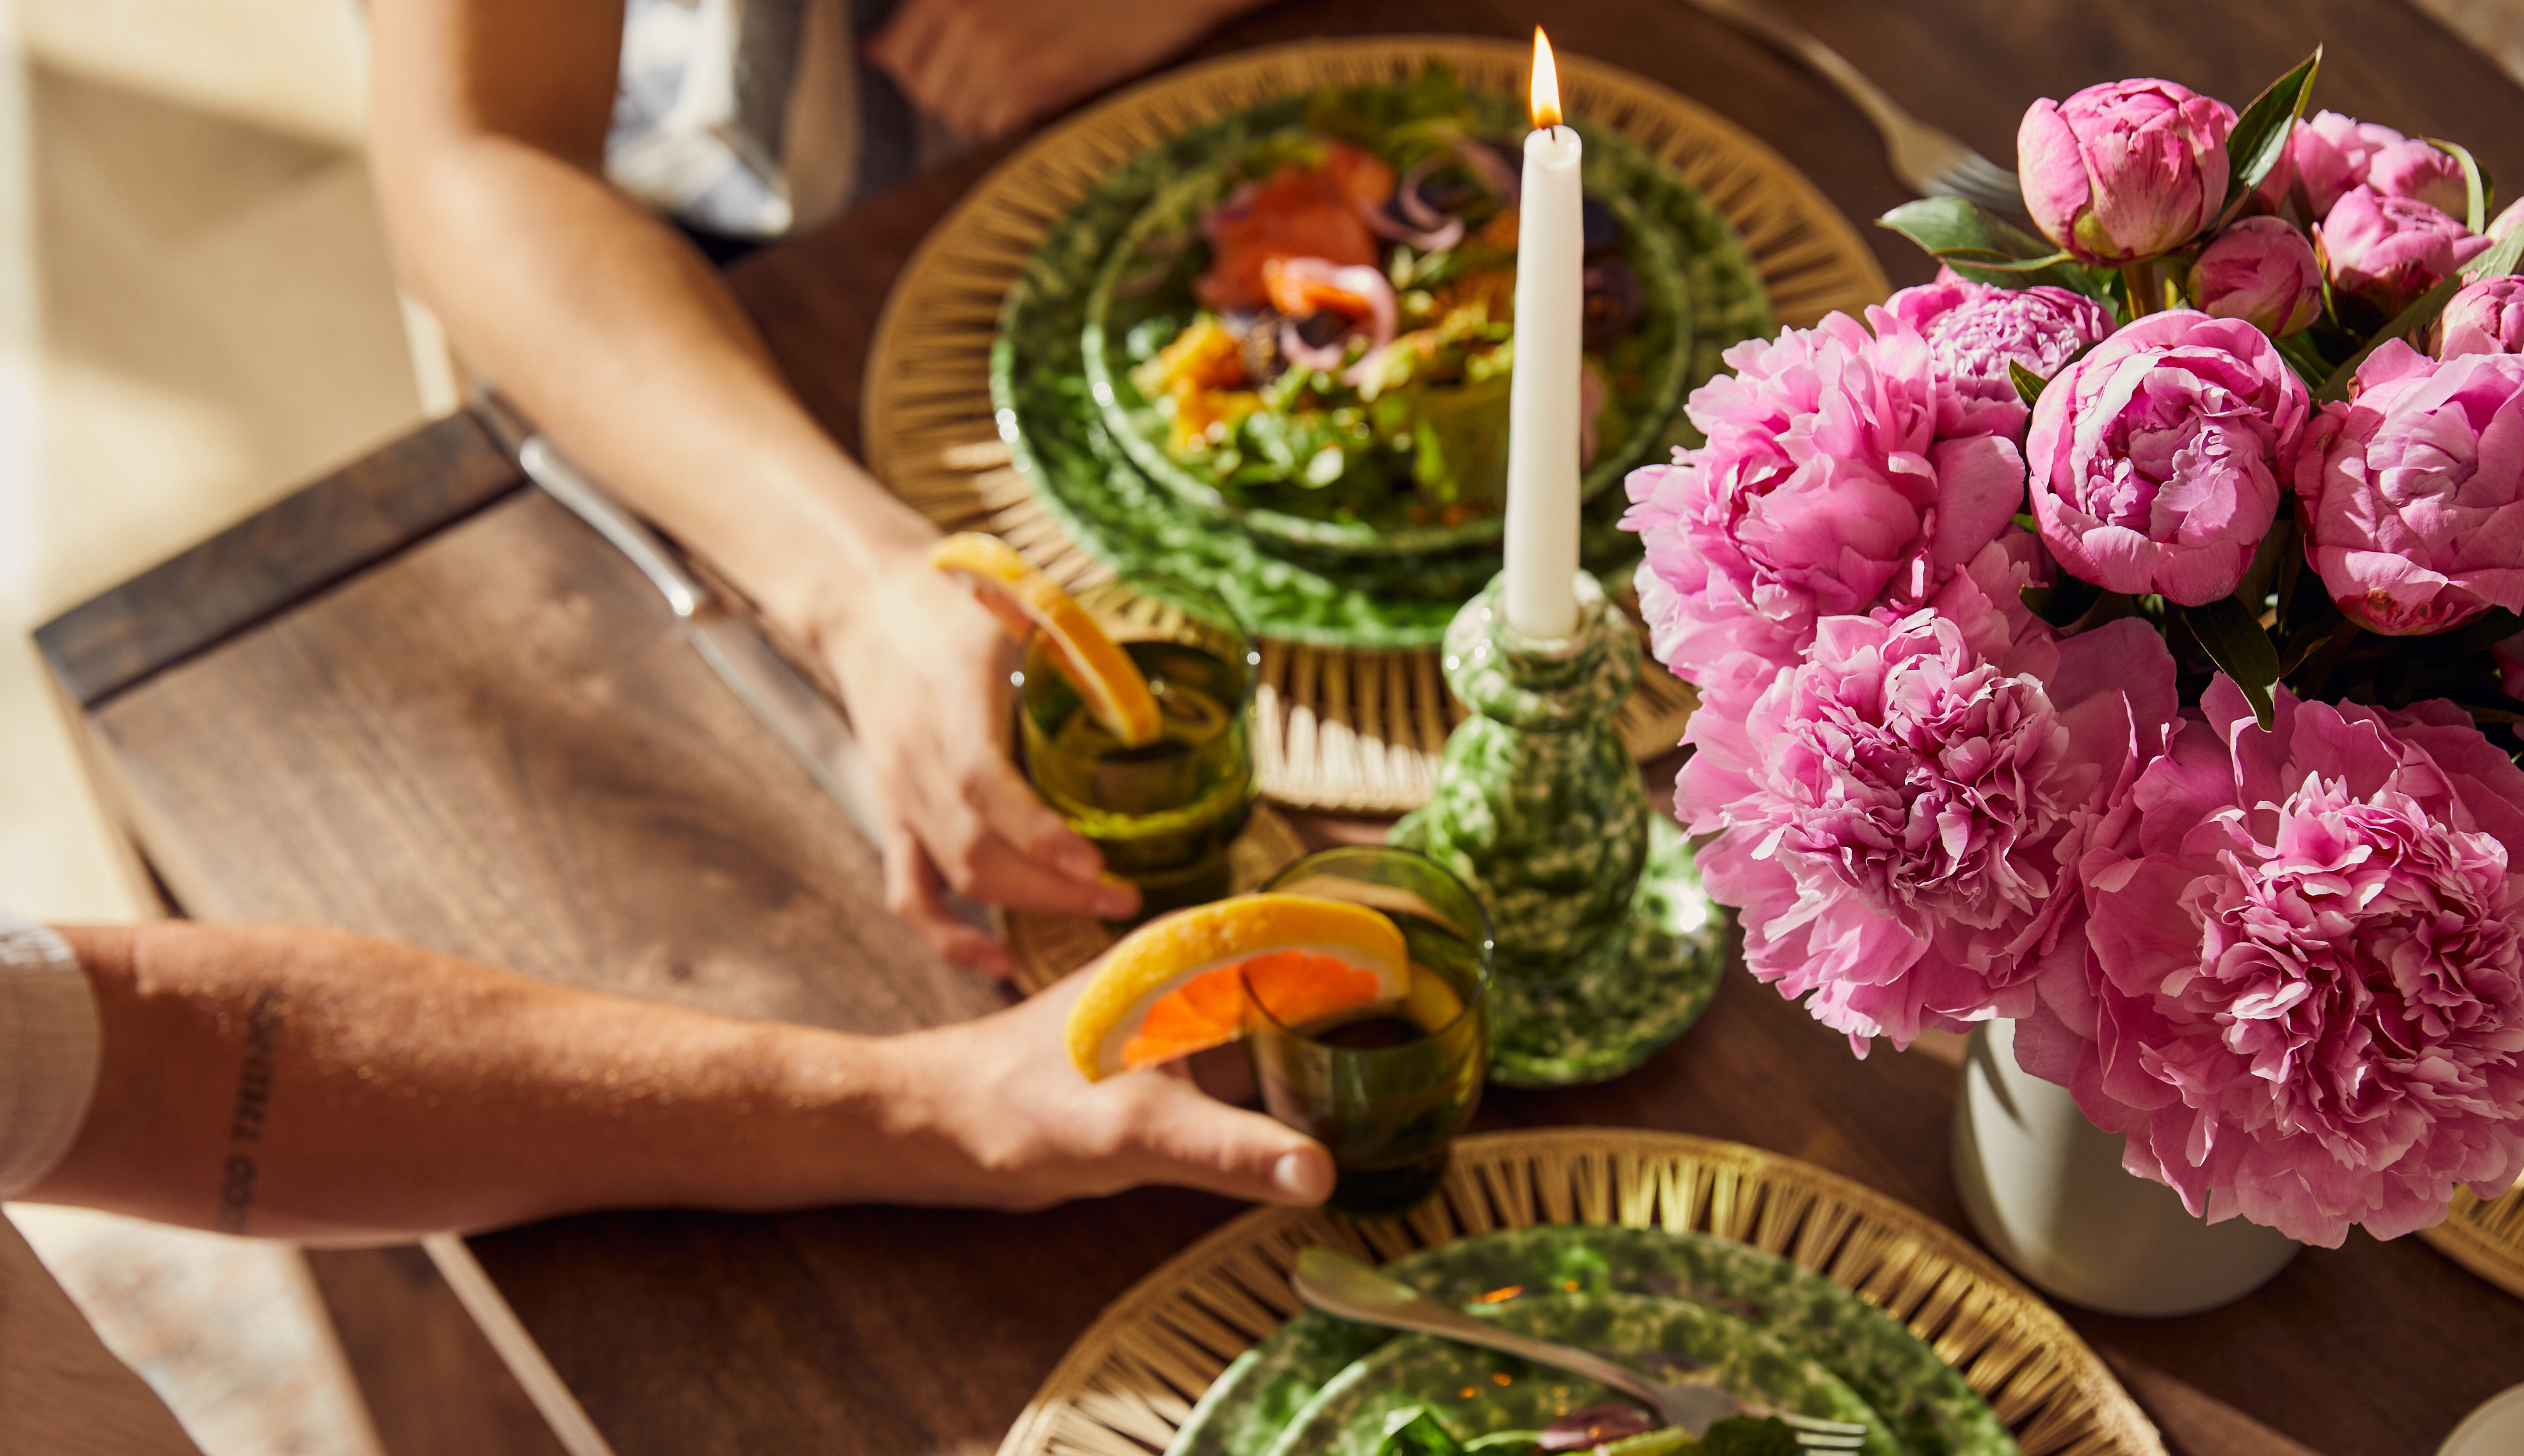 Table set with a bouquet of fresh flowers.